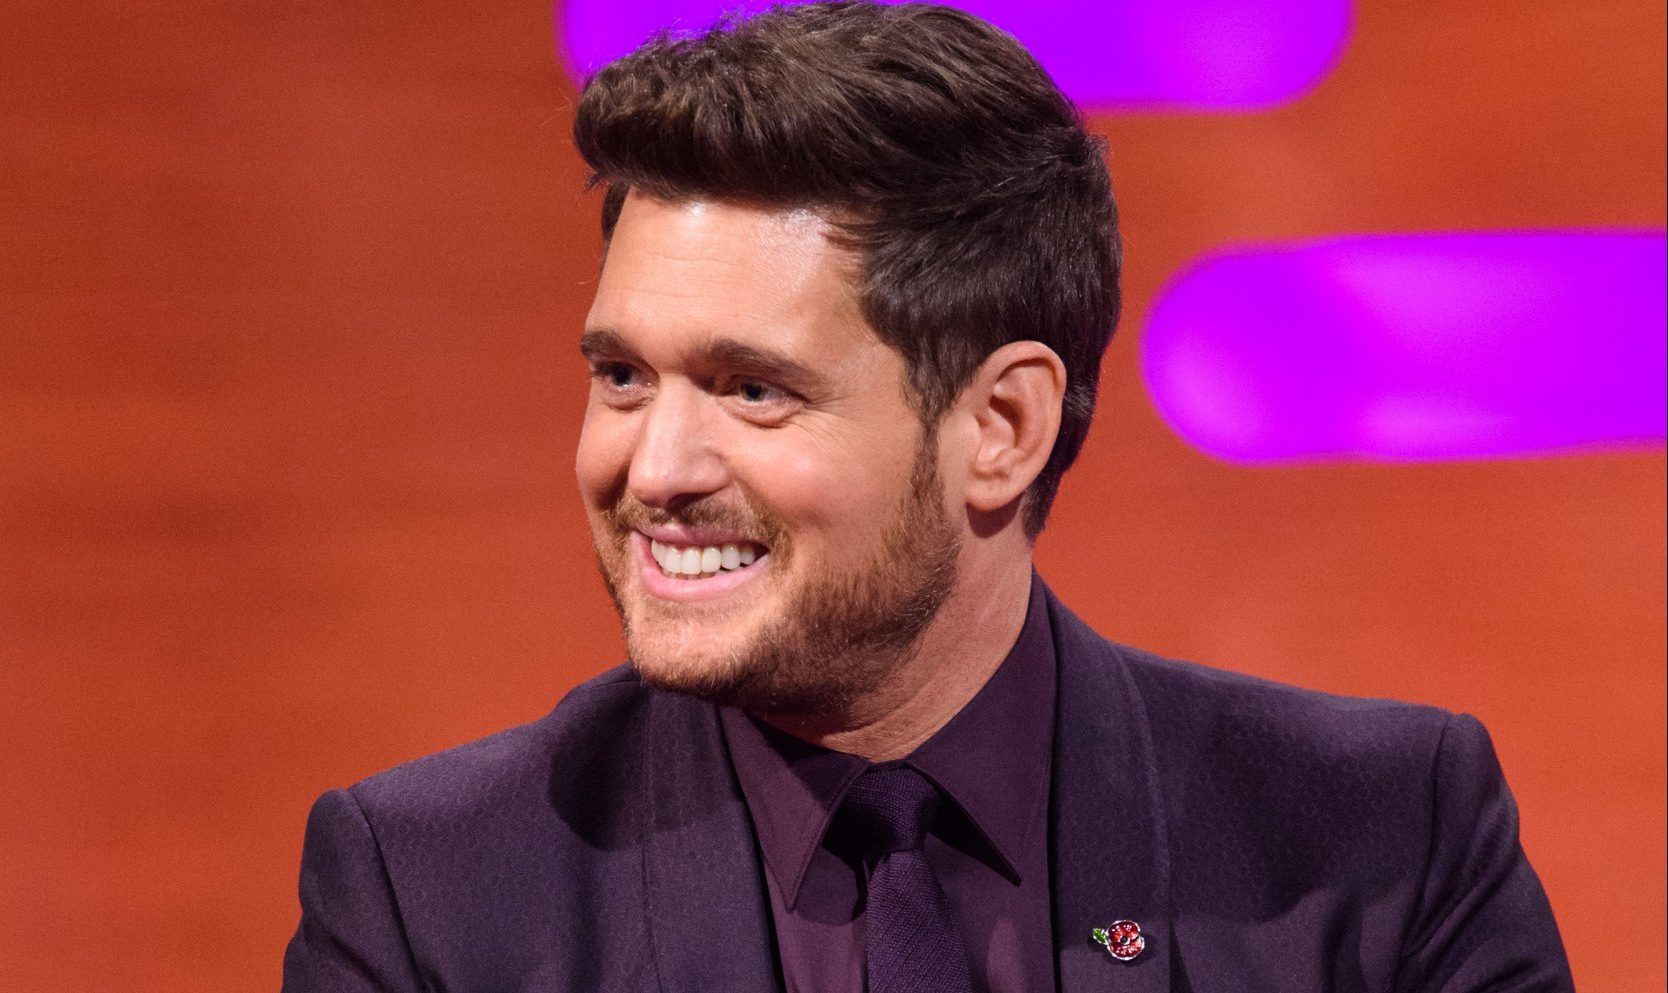 Michael Buble during the filming of the Graham Norton Show, during filming for the Graham Norton Show at BBC Studioworks in London, to be aired on BBC One on Friday. PRESS ASSOCIATION Photo. Picture date: Thursday November 8, 2018. See PA story SHOWBIZ Norton. Photo credit should read: PA Images on behalf of So TV/PA Wire